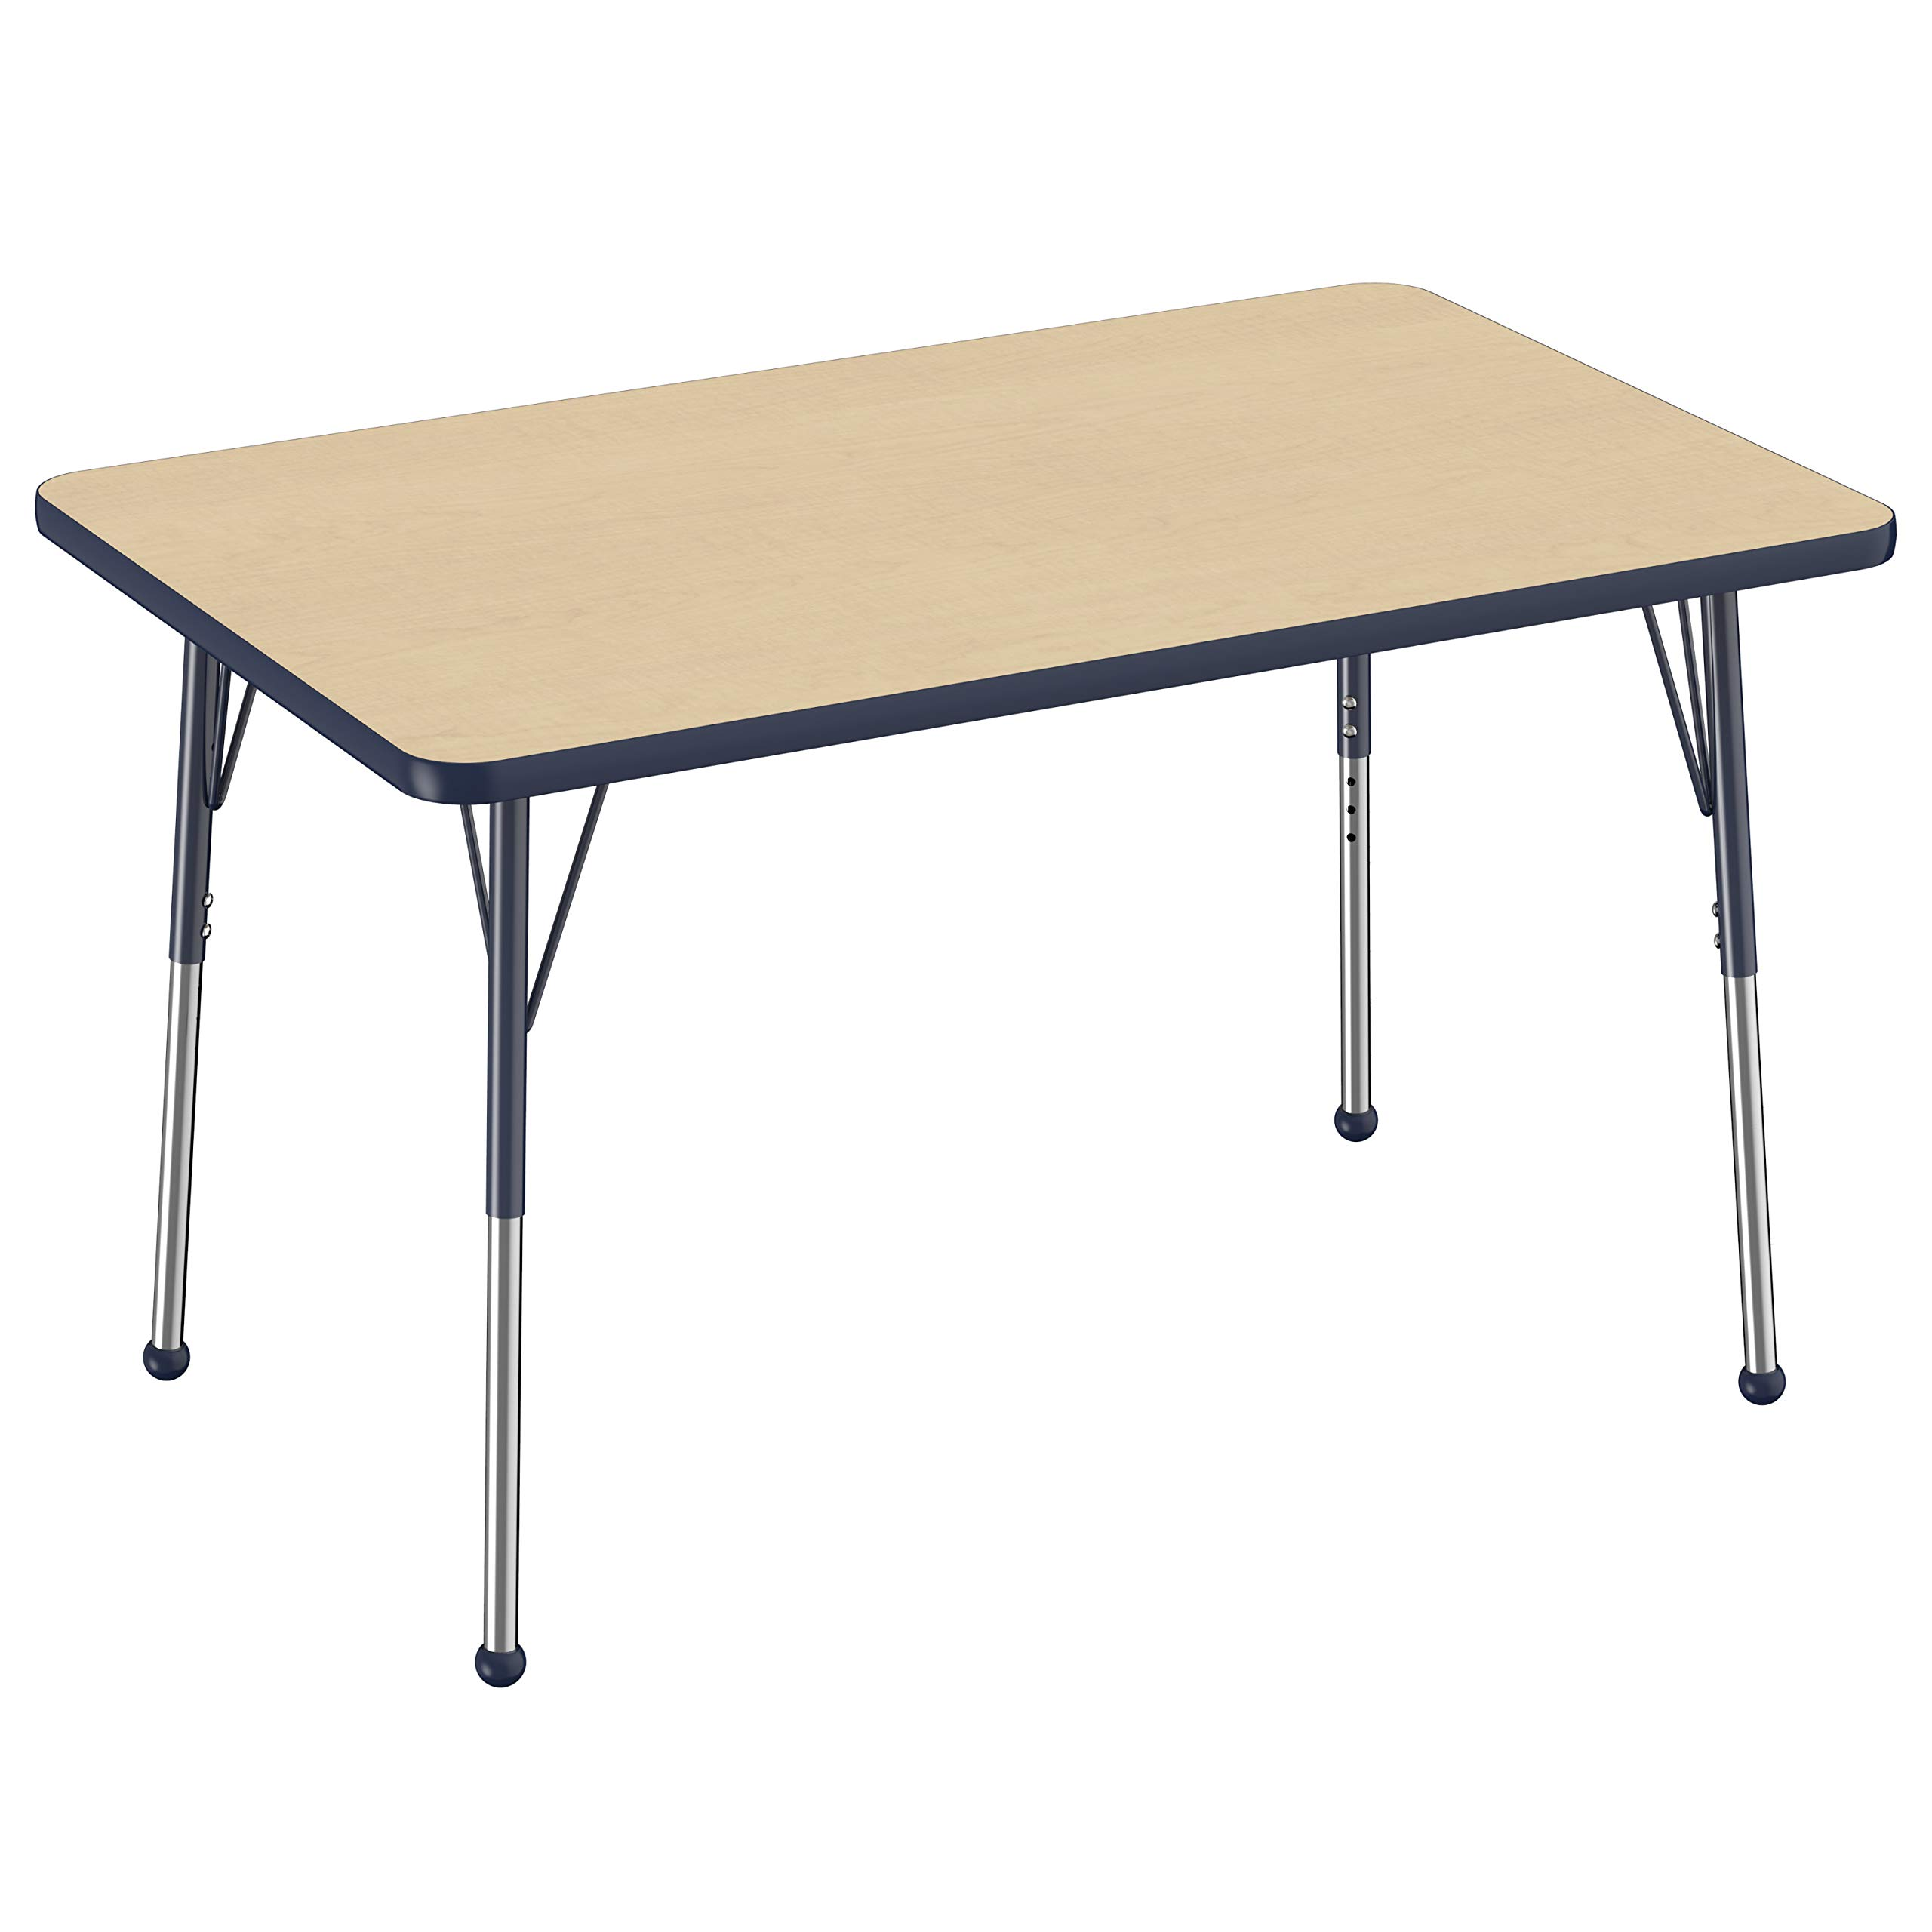 FDP Rectangle Activity School and Office Table (30 x 48 inch), Standard Legs with Ball Glides, Adjustable Height 19-30 inches - Maple Top and Navy Edge